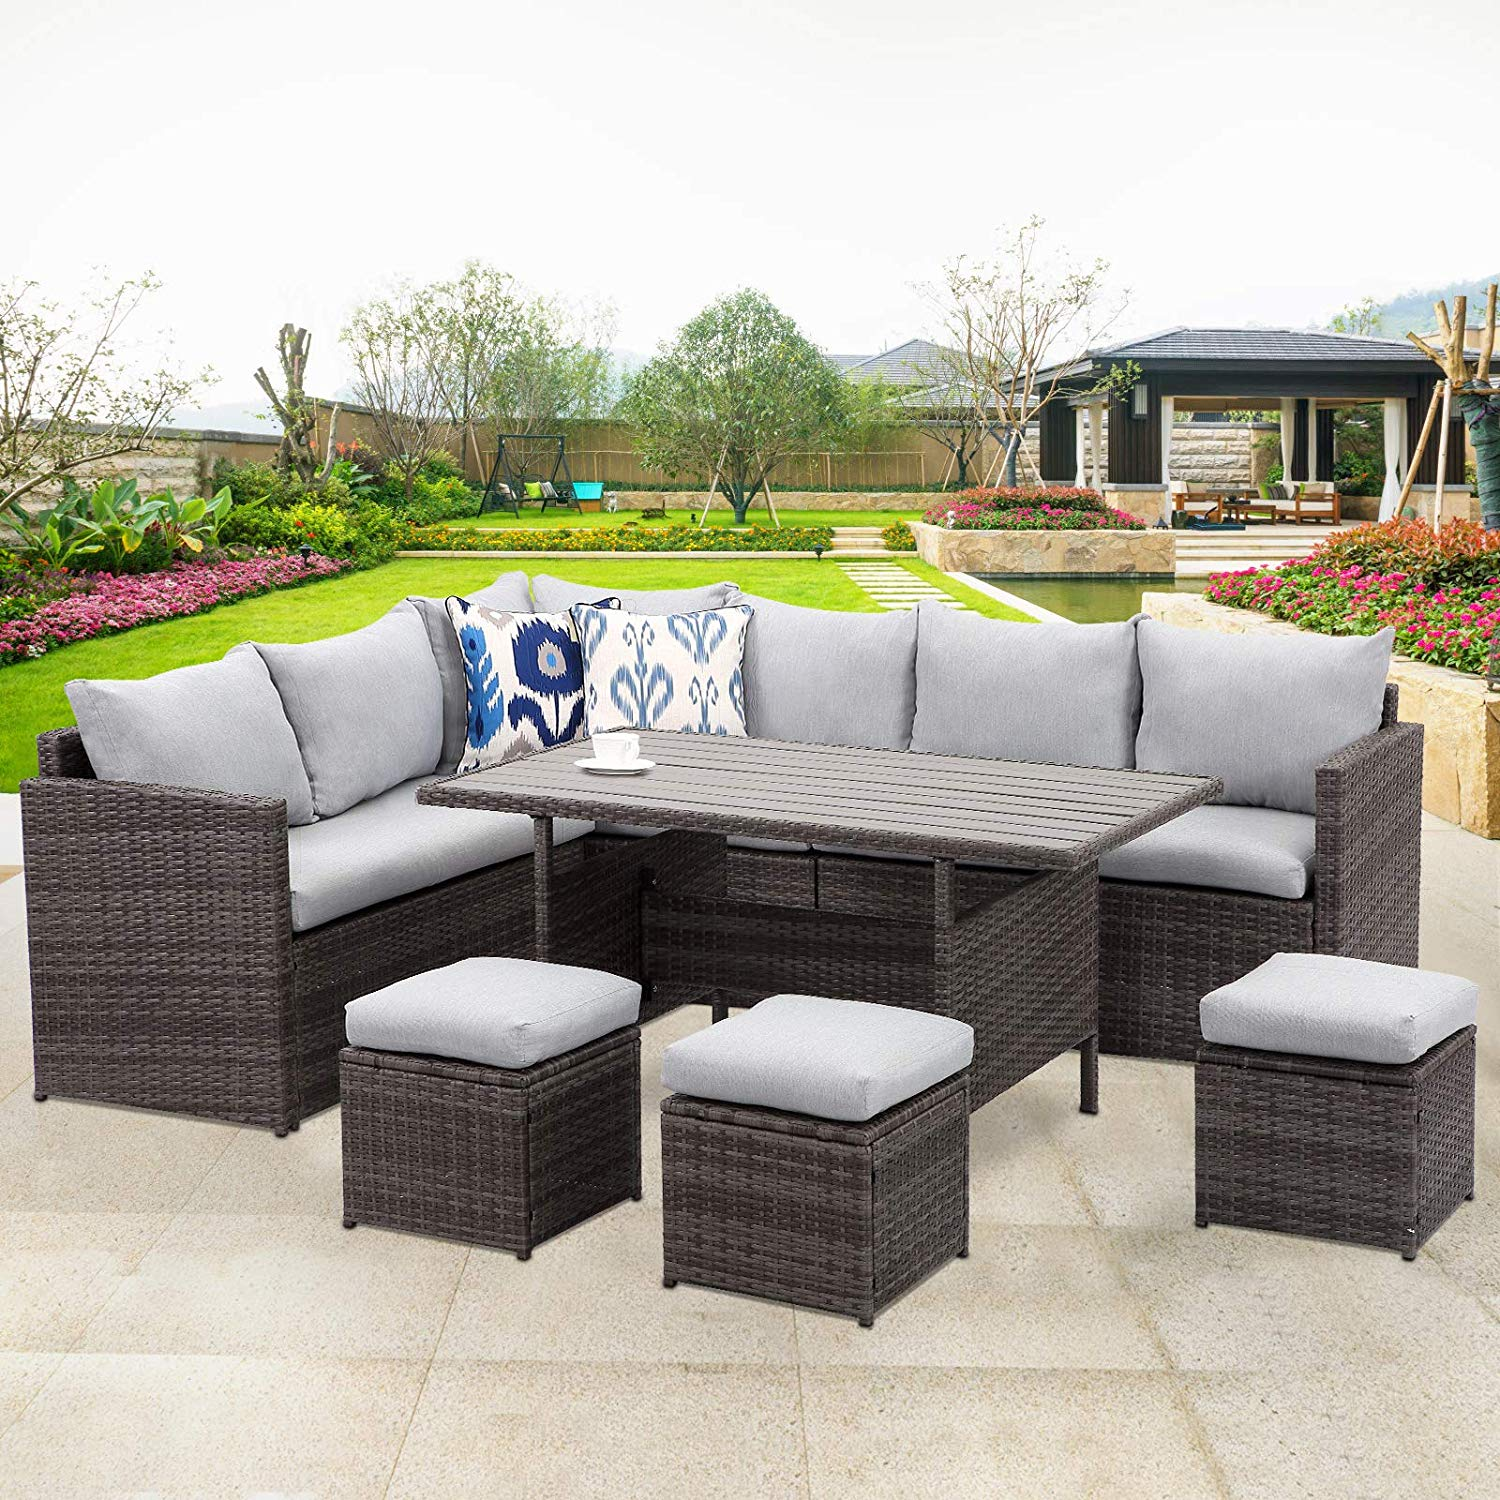 7 piece outdoor conversation set all weather wicker sectional sofa couch dining table chair with ottoman grey